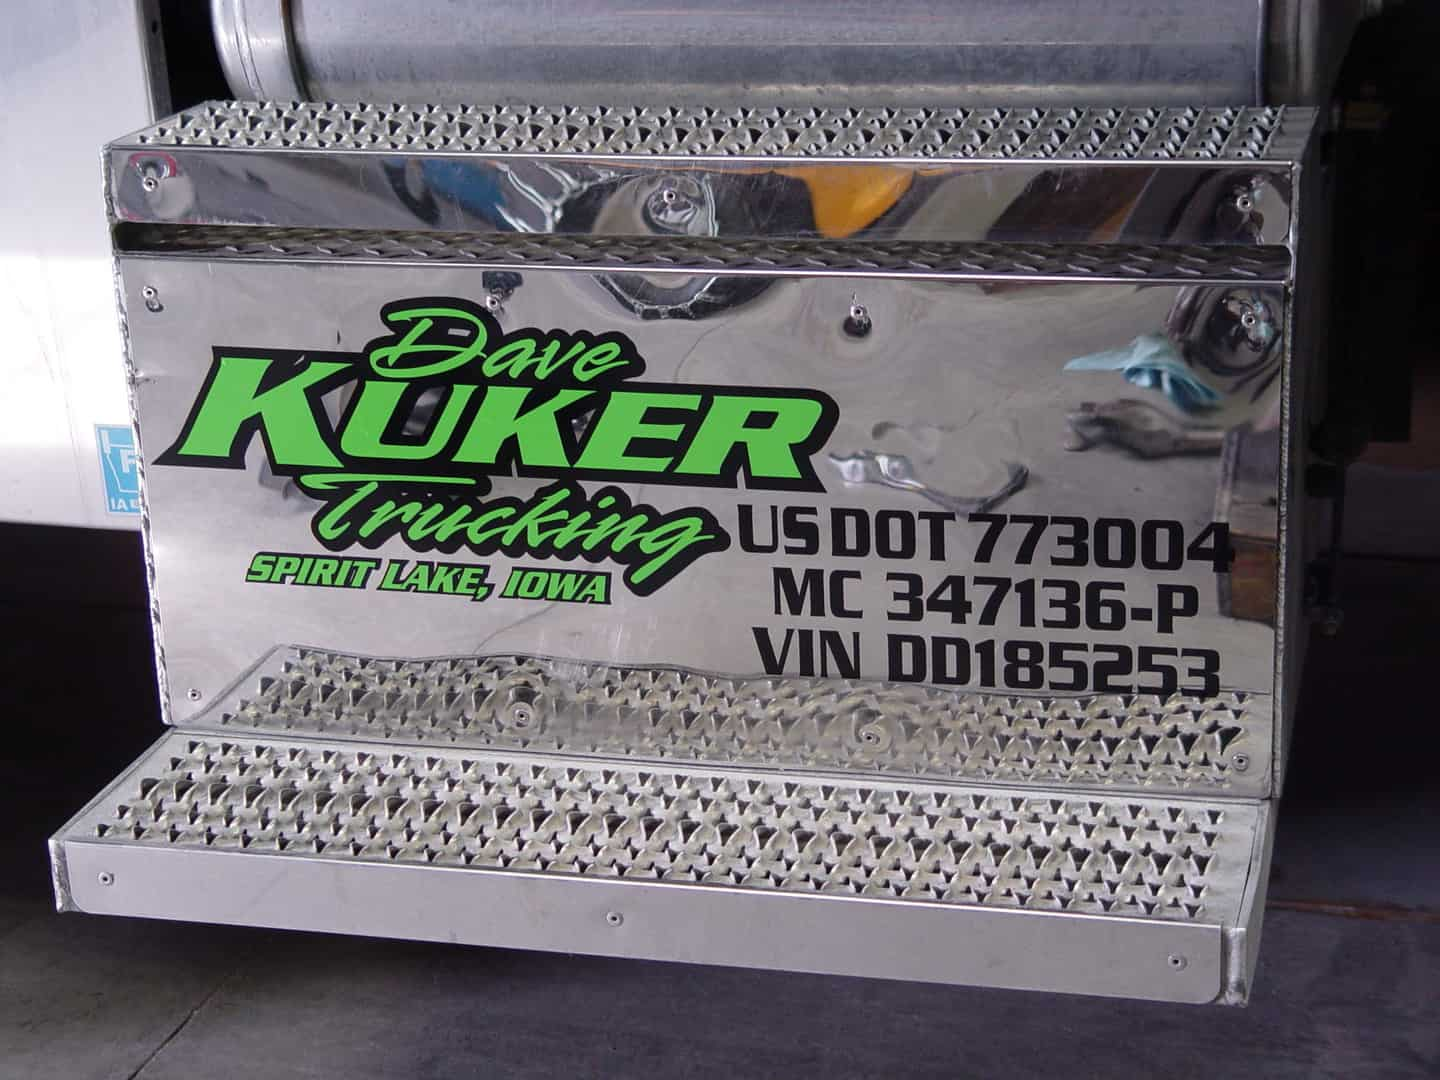 Kuker Trucking vinyl decals - Okoboji Graphics